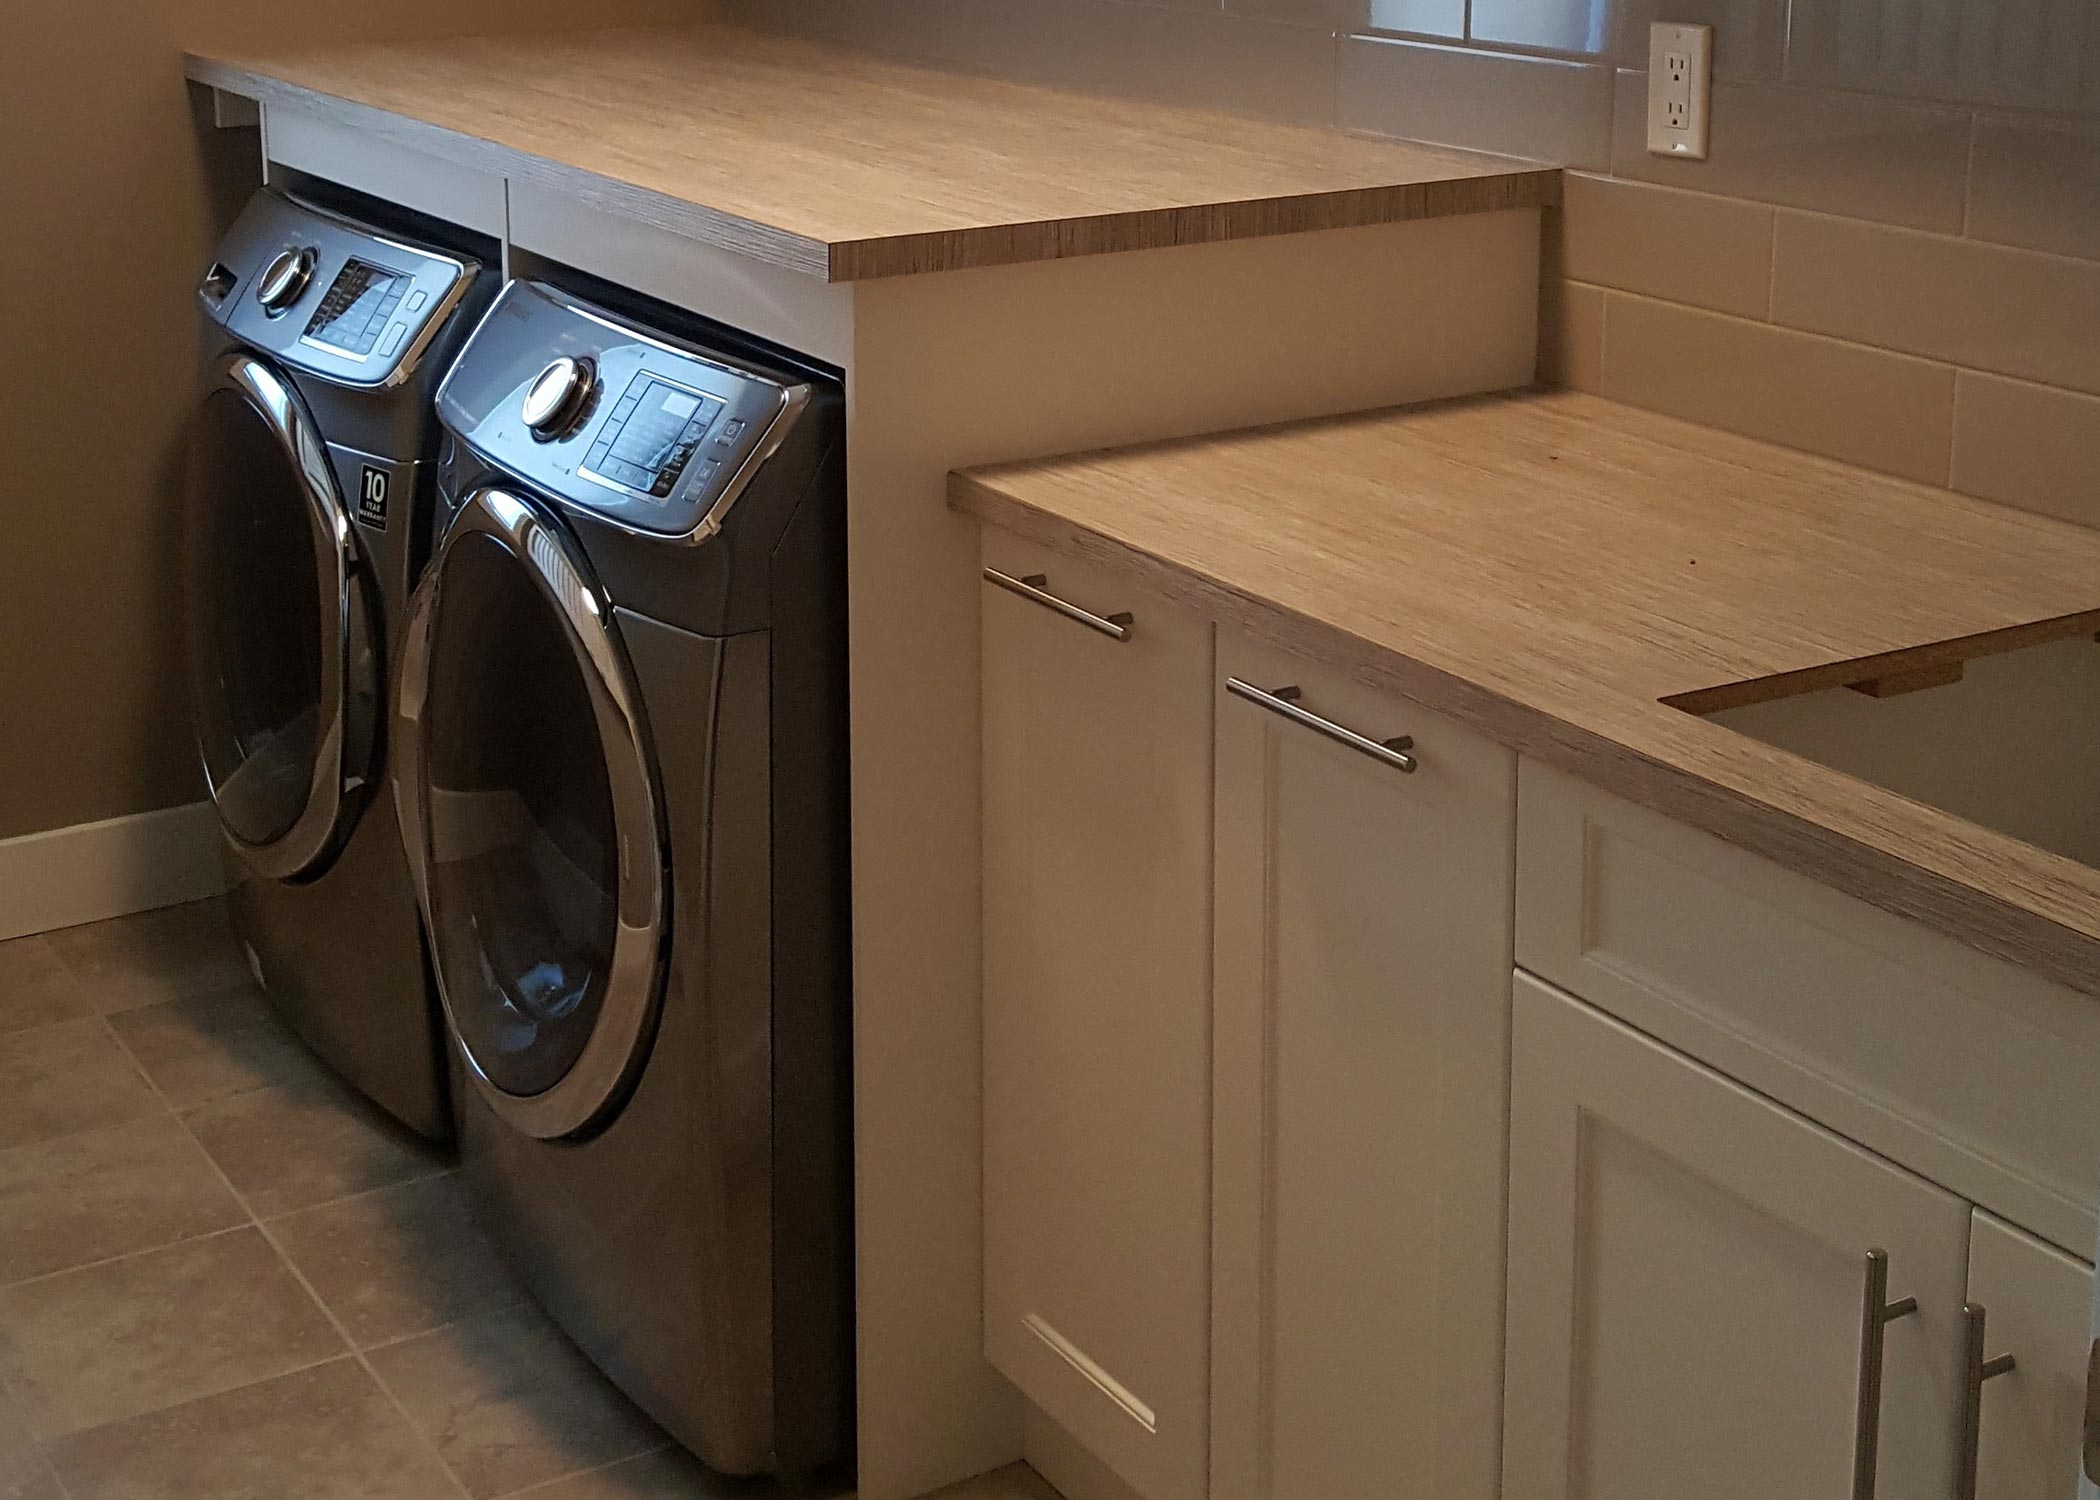 carnegie-contracting-inc-laundry-room-renovation-experts-calgary